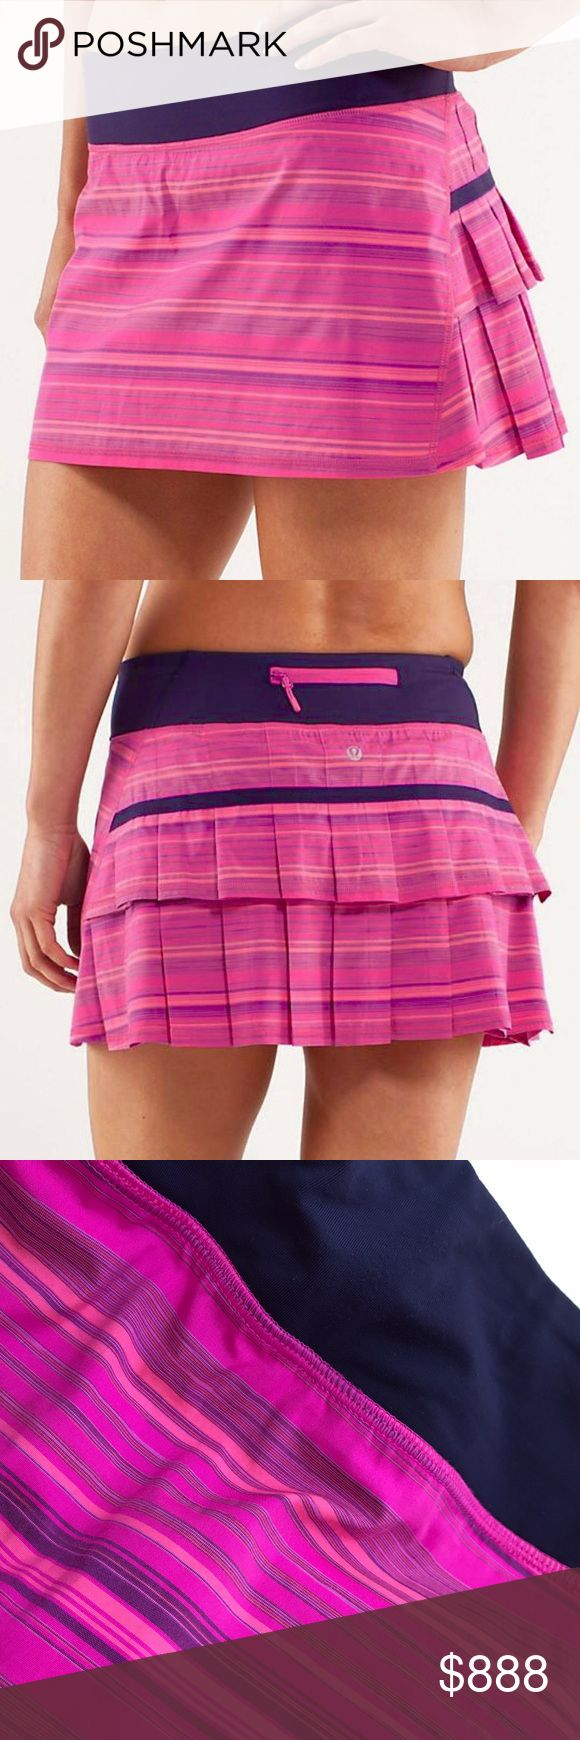 Lululemon Elevate Stripe Pace Setter Skirt 4 Lululemon Elevate Stripe Pace Setter Skirt in pink. Good pre-loved condition. No stains or fading. Grips on shorts have some wear at seams, this looks to be the only flaw, they do still grip well. Please see pics. Back zip pocket, 2 front key pockets, ball pocket. Firm on price. Size 4. Last pic is LLL stock pic, actual skirt color is like actual pics. lululemon athletica Skirts